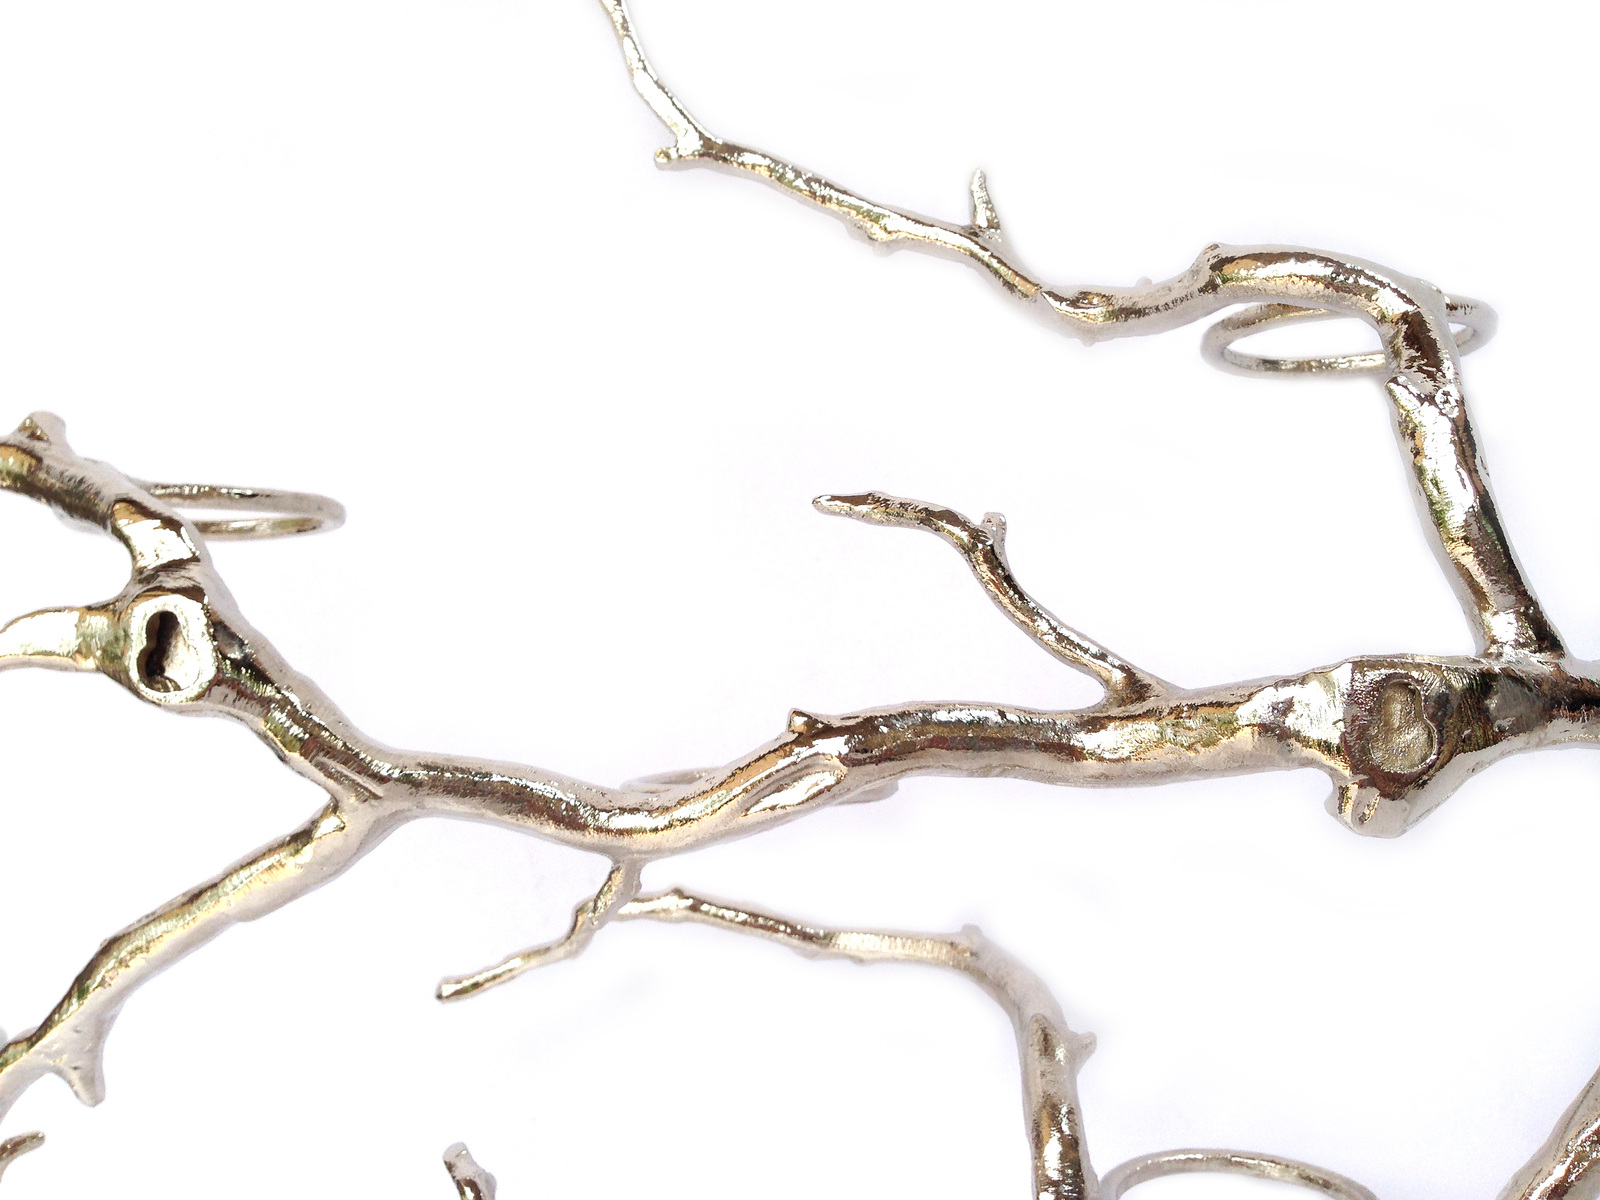 Rustic Tree Branch Candle Holder Wall Candle Holder Manzanita Tree Candle Holder image 4